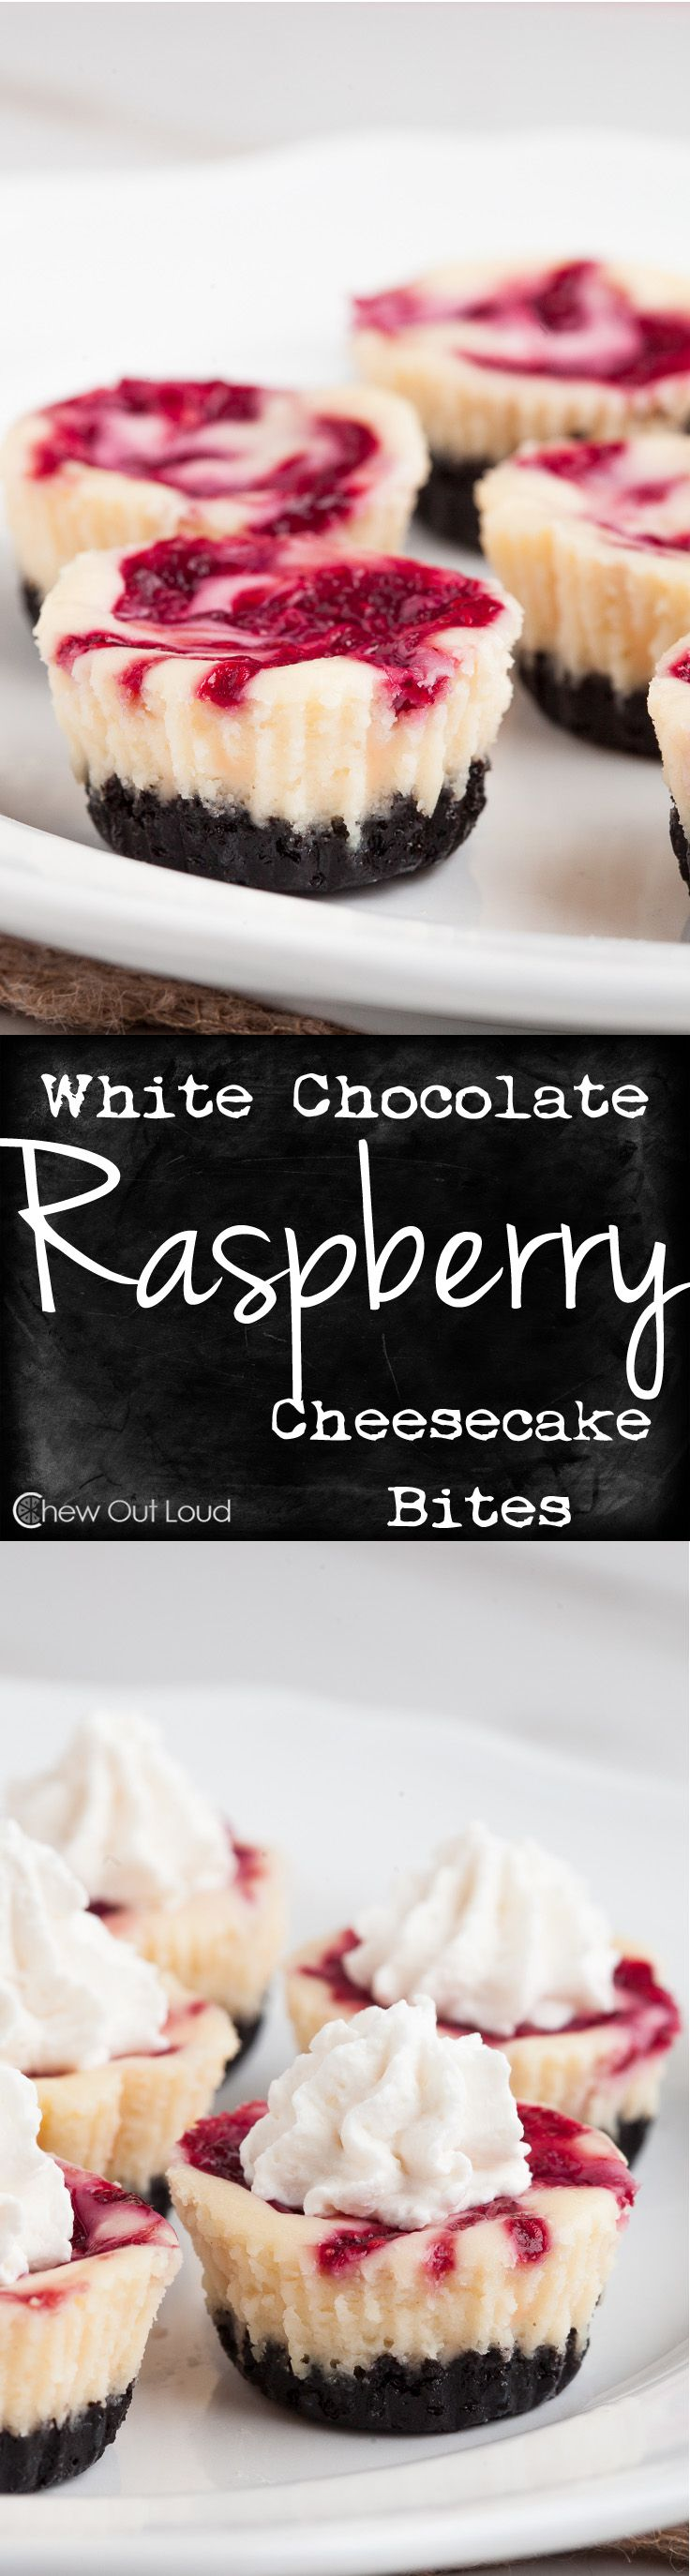 White Chocolate Raspberry Cheesecakes Bites #chocolatepops